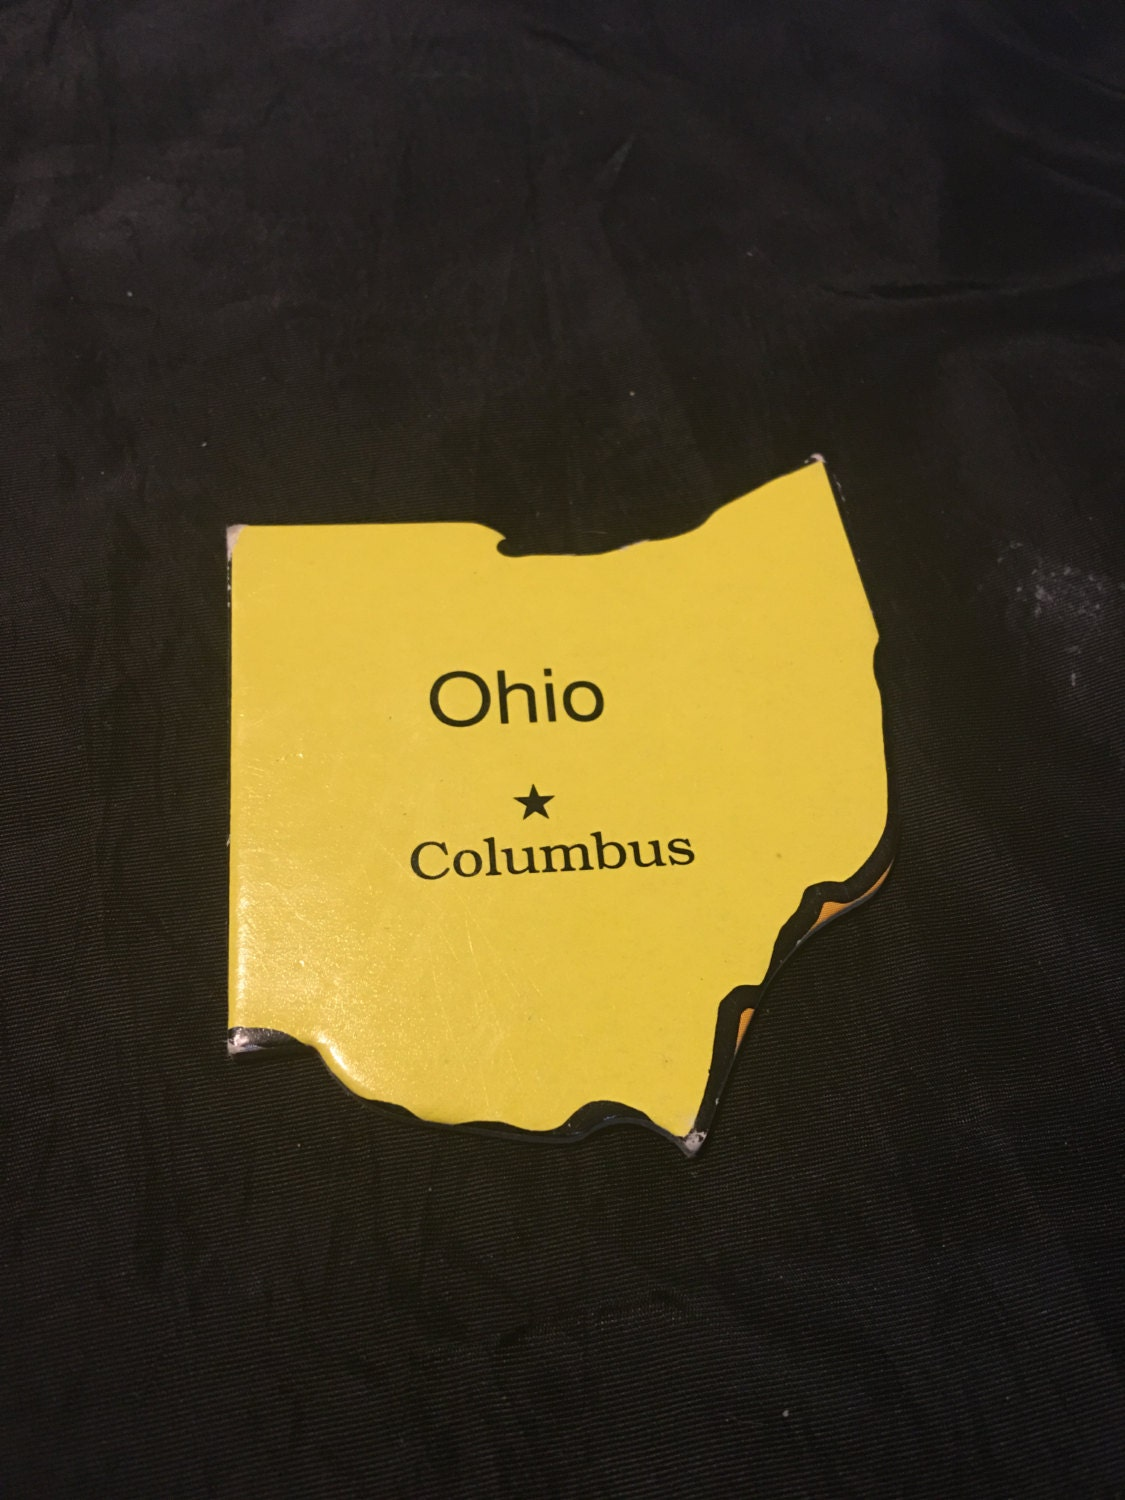 State of ohio craft scrapbook embellishments puzzle piece for Decoration or embellishment crossword